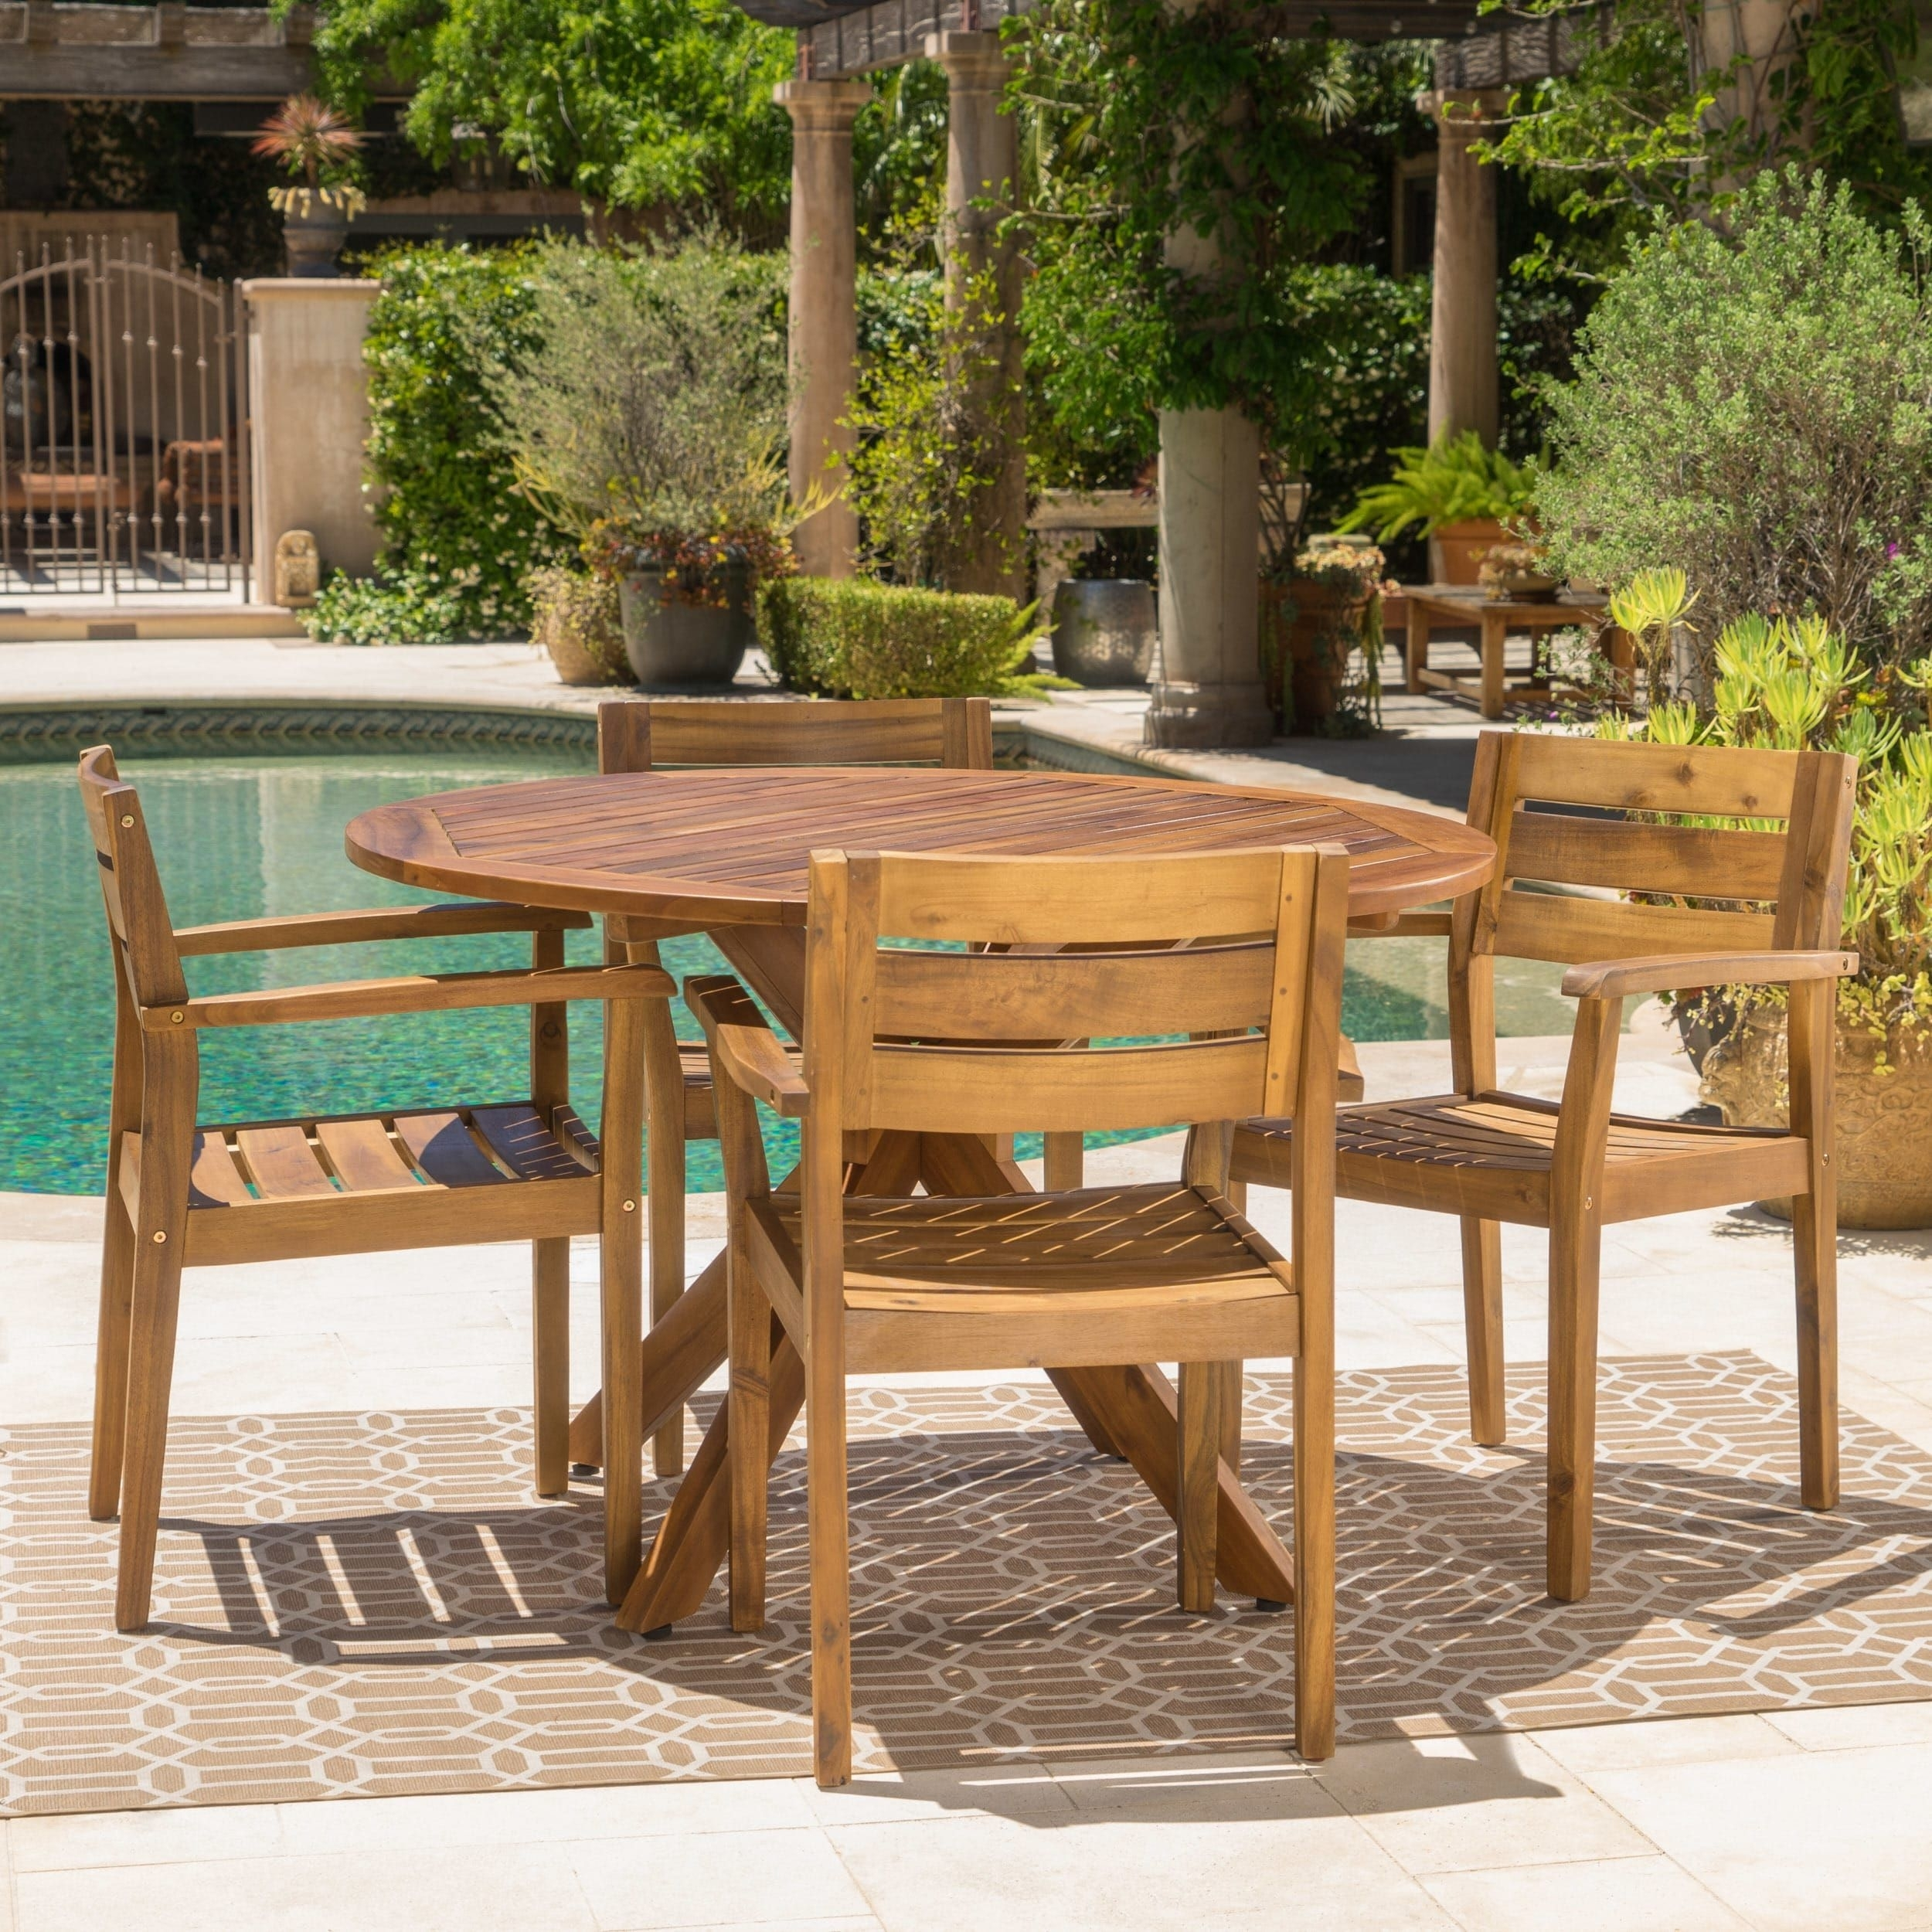 Stamford Outdoor 5 Piece Round Acacia Wood Dining Setchristopher Within Recent Outdoor Brasilia Teak High Dining Tables (View 7 of 20)